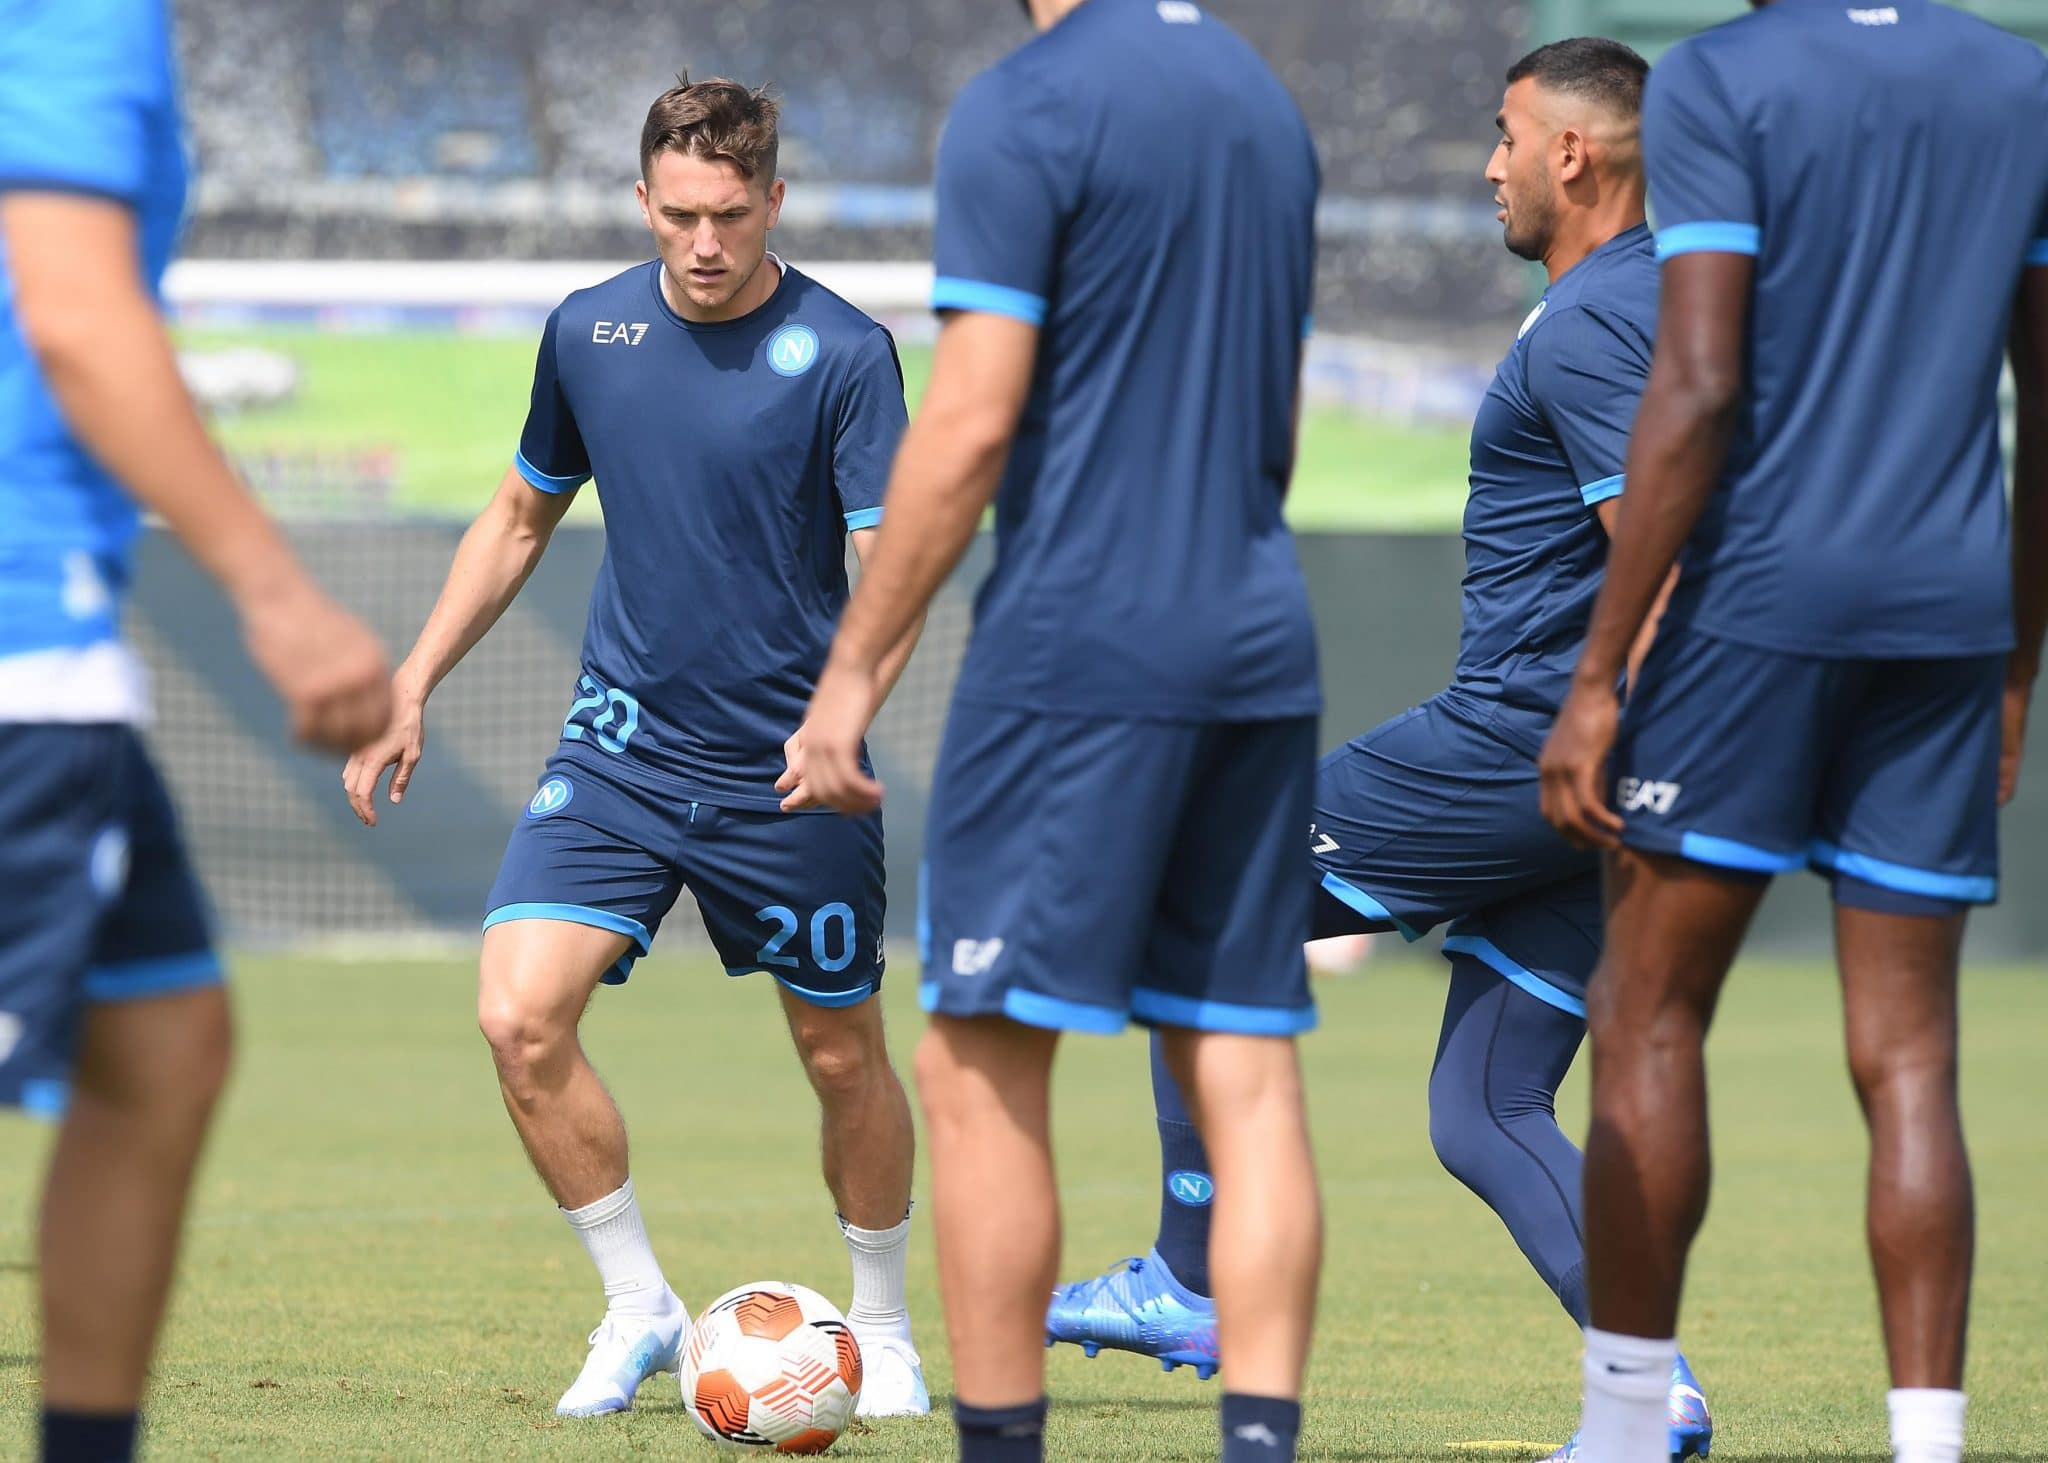 LEICESTER, ENGLAND - SEPTEMBER 15: Piotr Zielinski of Napoli during a training session, on the eve of their Europa League group stage match against Leicester City, at The King Power Stadium on September 15, 2021 in Leicester, England. (Photo by SSC NAPOLI/SSC NAPOLI via Getty Images)